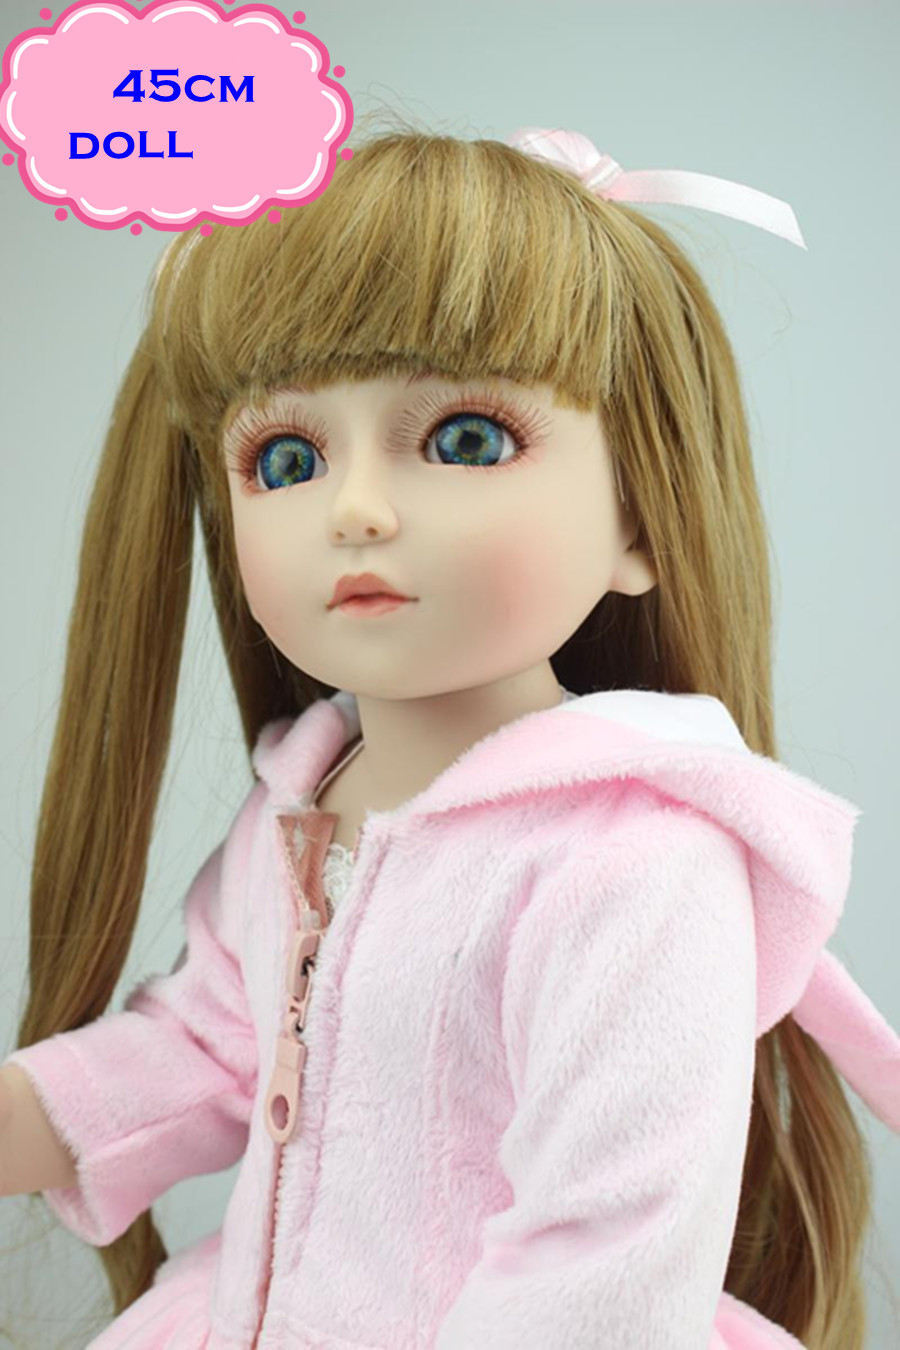 18'' Free Shipping Girls Toys SD/BJD Doll With Long Brown Hair Pretty Full Silicone Vinyl Baby Dolls With Pink Clothes For Dolls 18 45cm hard body bjd sd brown hair blue or brown eyes baby doll lifelike ball joint doll for baby girls